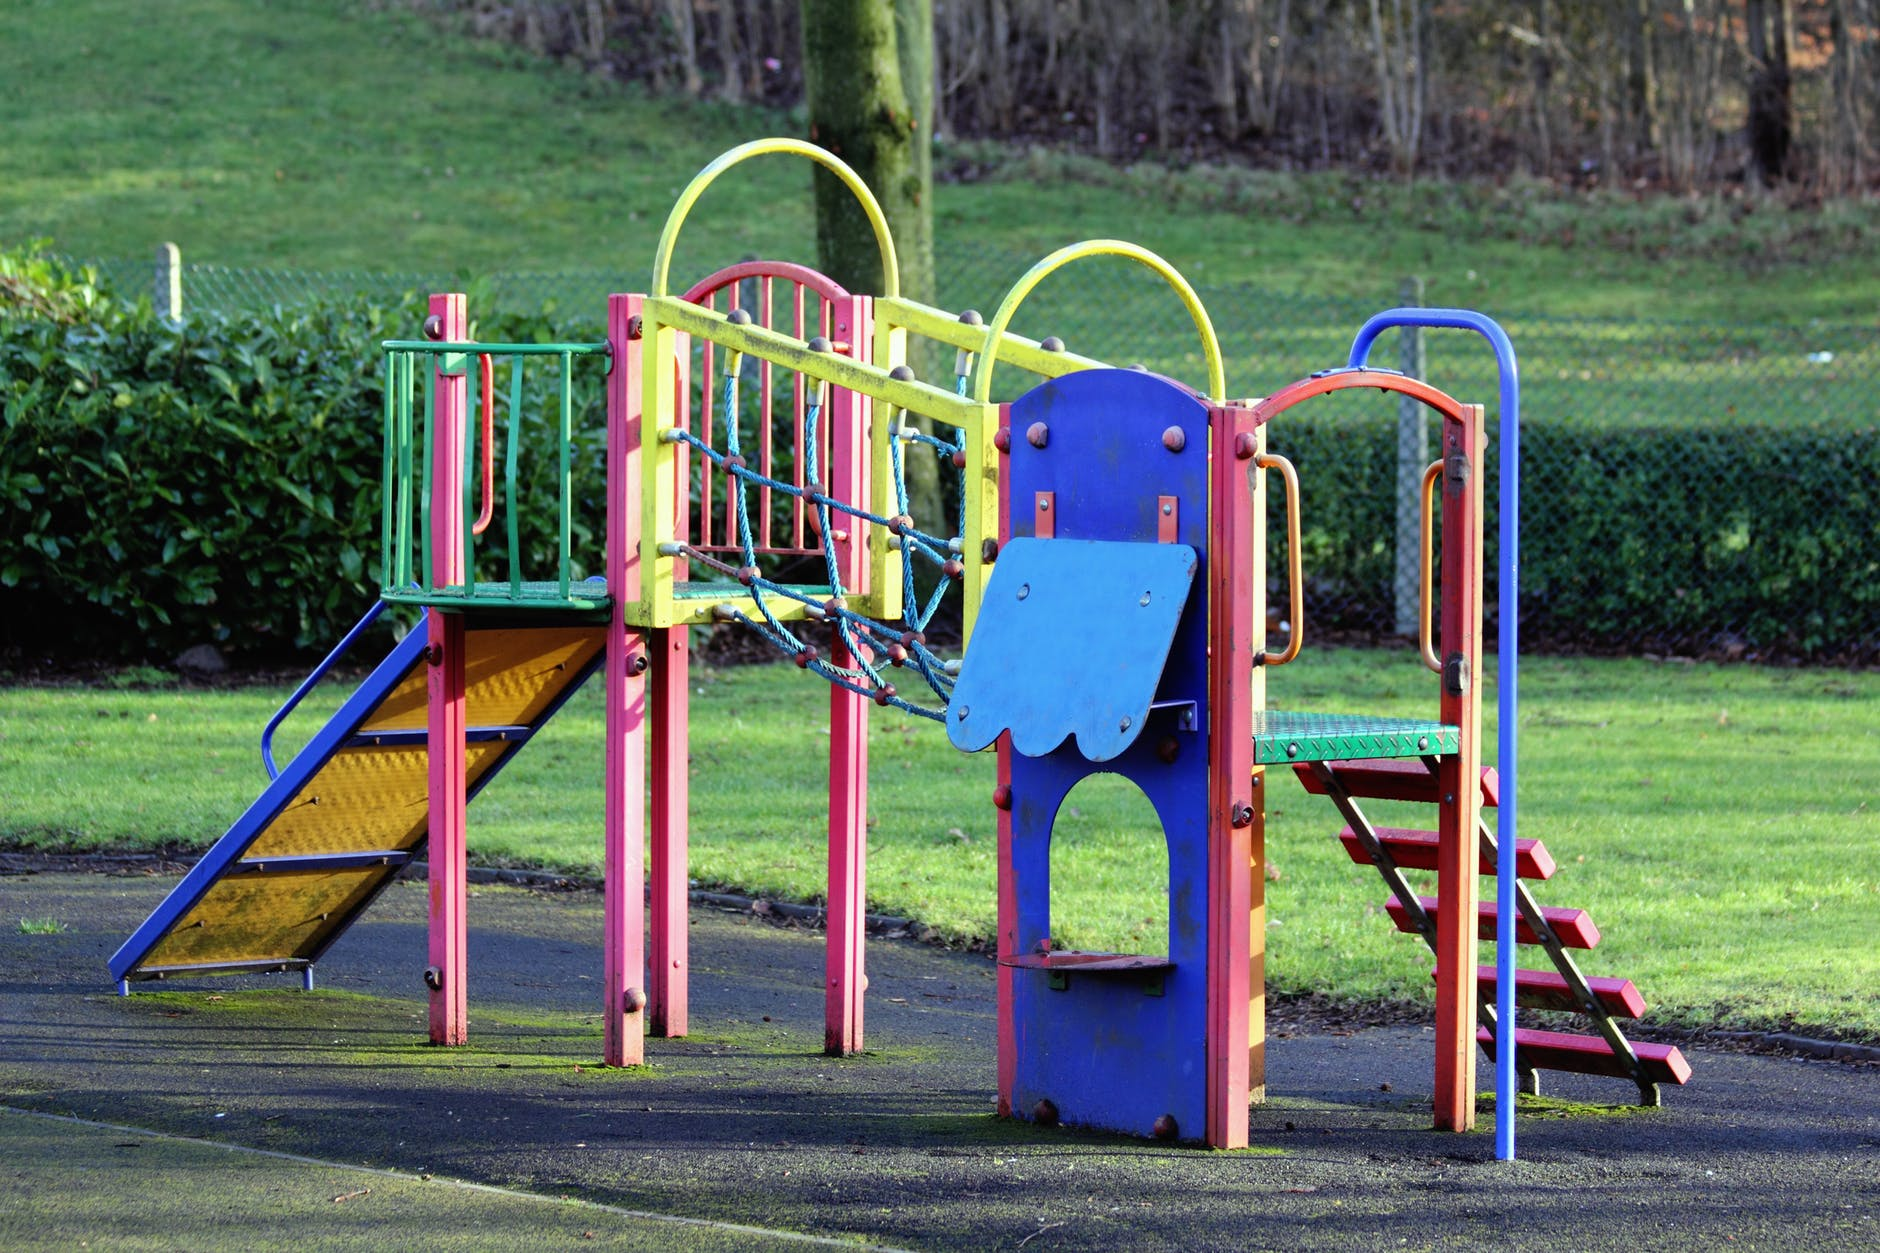 Playground Safety Issues